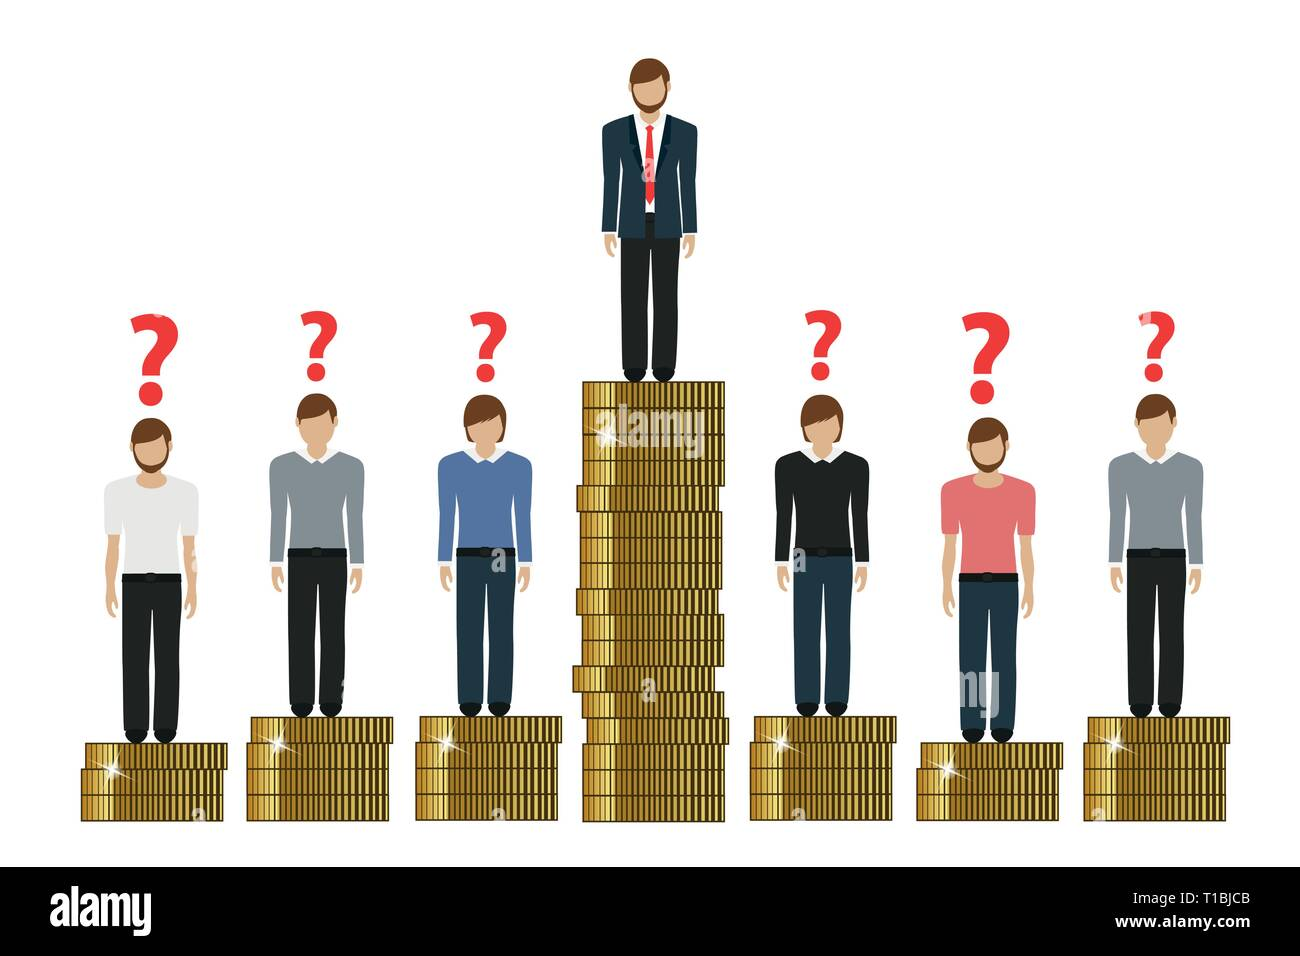 gap between rich and poor work finance concept with coins vector illustration EPS10 - Stock Image